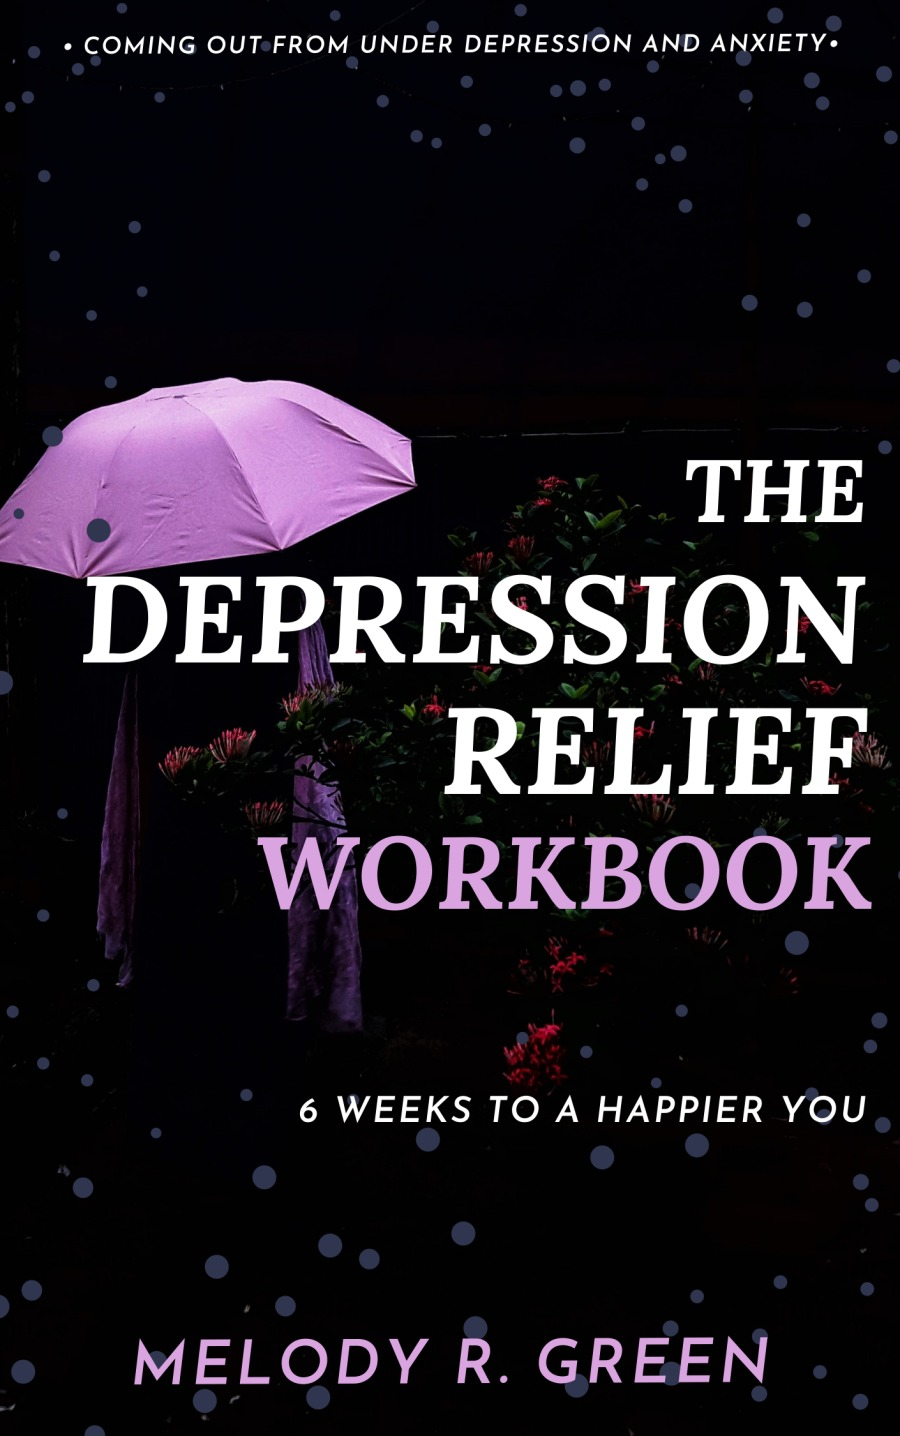 + COMING OUT-FROM UNDER DEPRESSION AND ANXIETY.  fe G0: EPRESSION  3A) WORKBOOK      6 WEEKS TO A HAPPIER YOU  MELODY R. GREEN